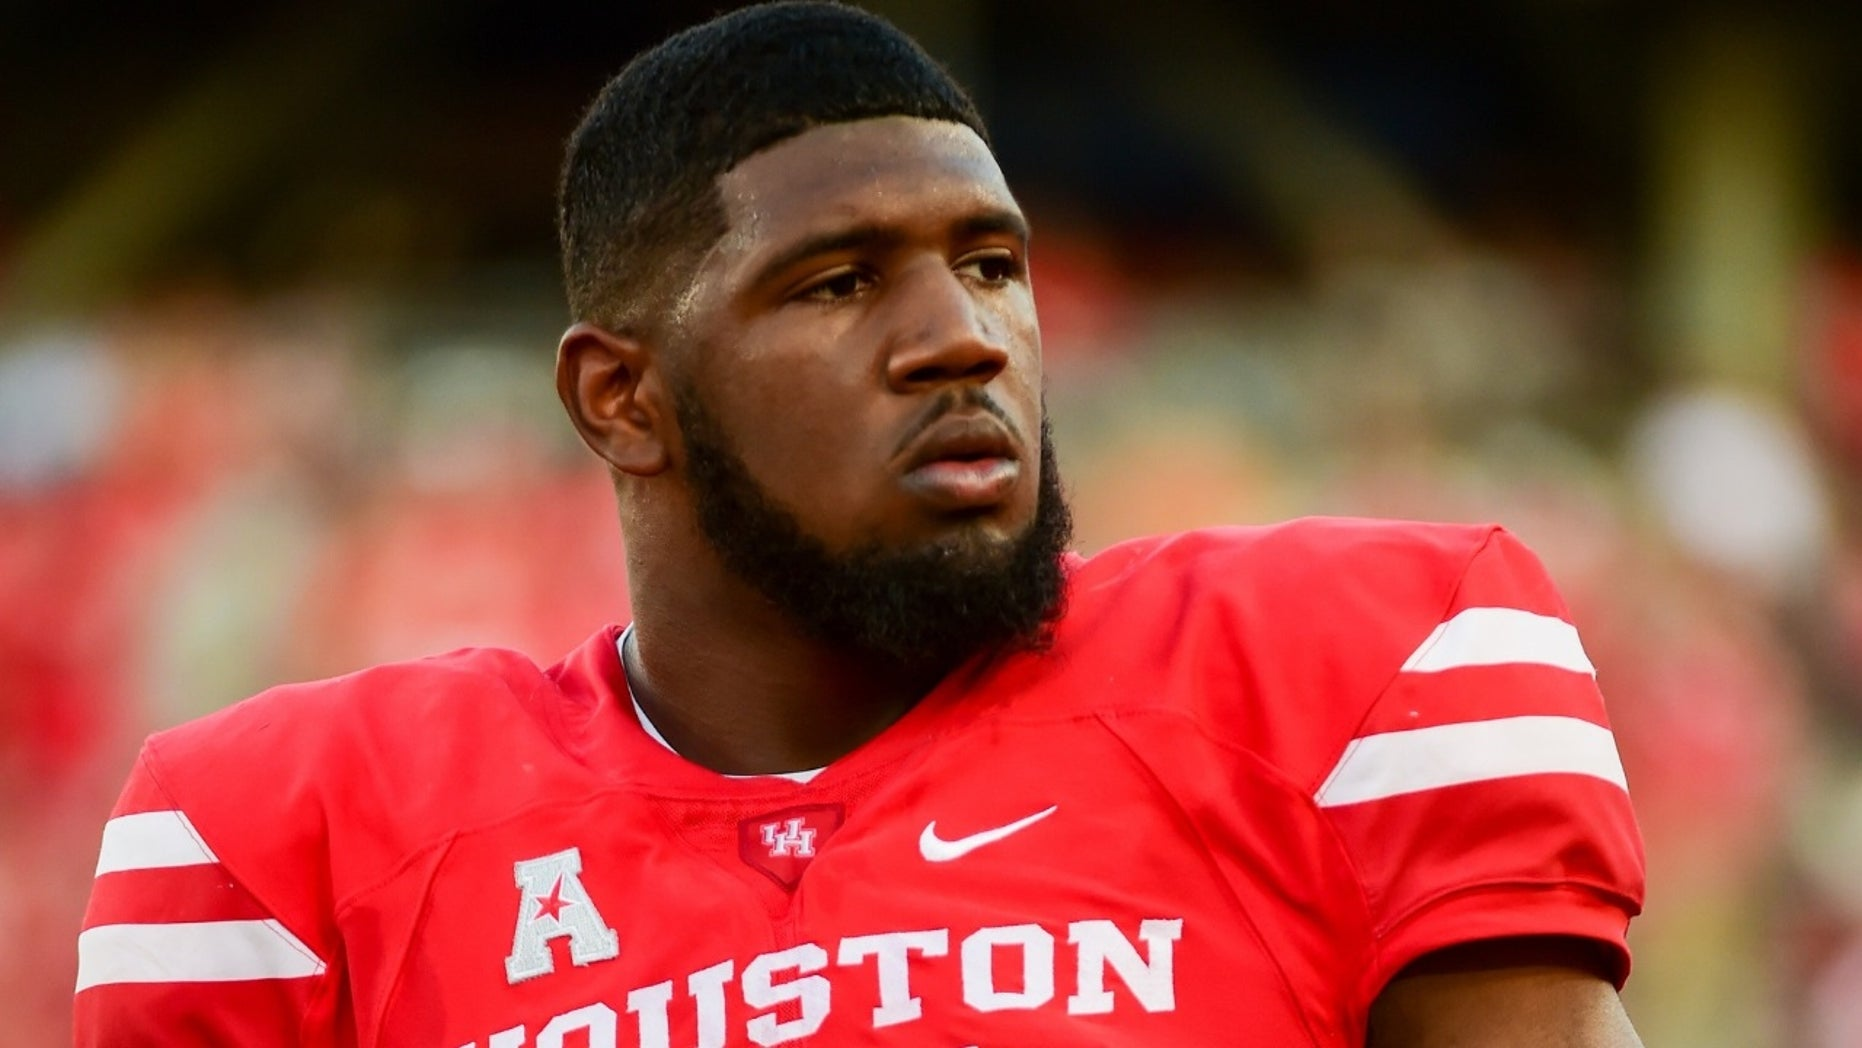 Ed Oliver got into a heated argument with his coach over a coat on Thursday, Nov. 15, 2018.